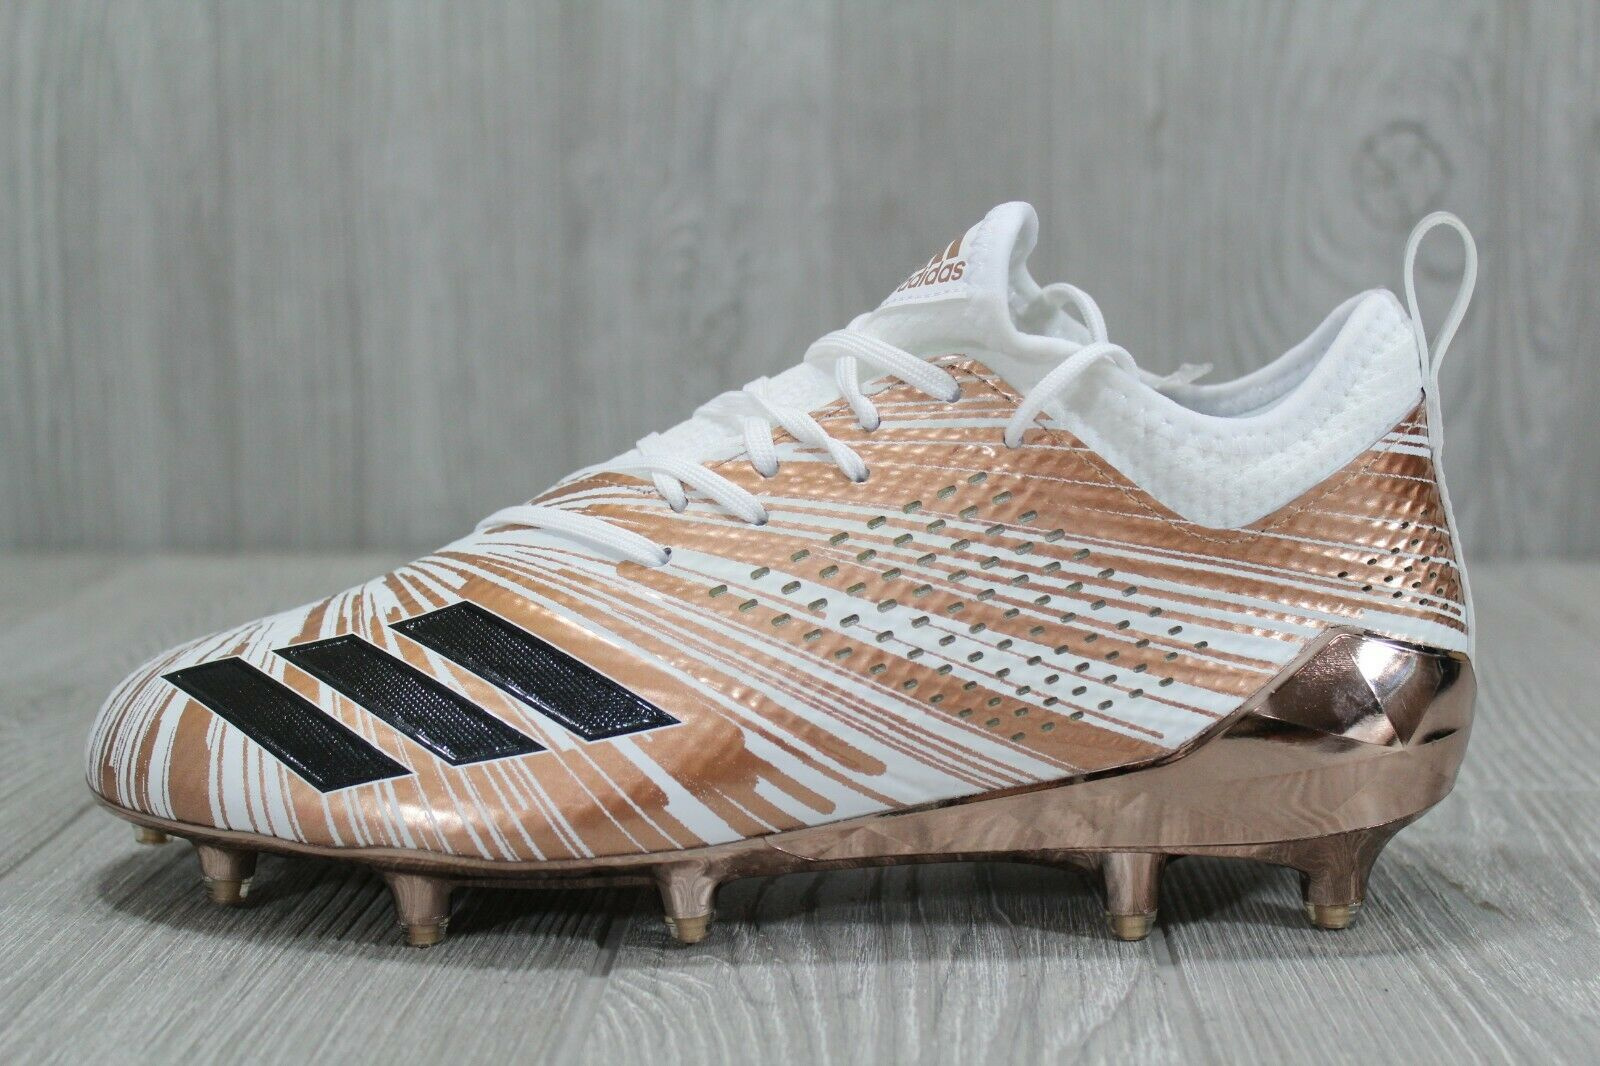 39 Adidas AdiZero 5-Star 7.0 Metallic gold White Cleats Size 8, 13 CQ0345